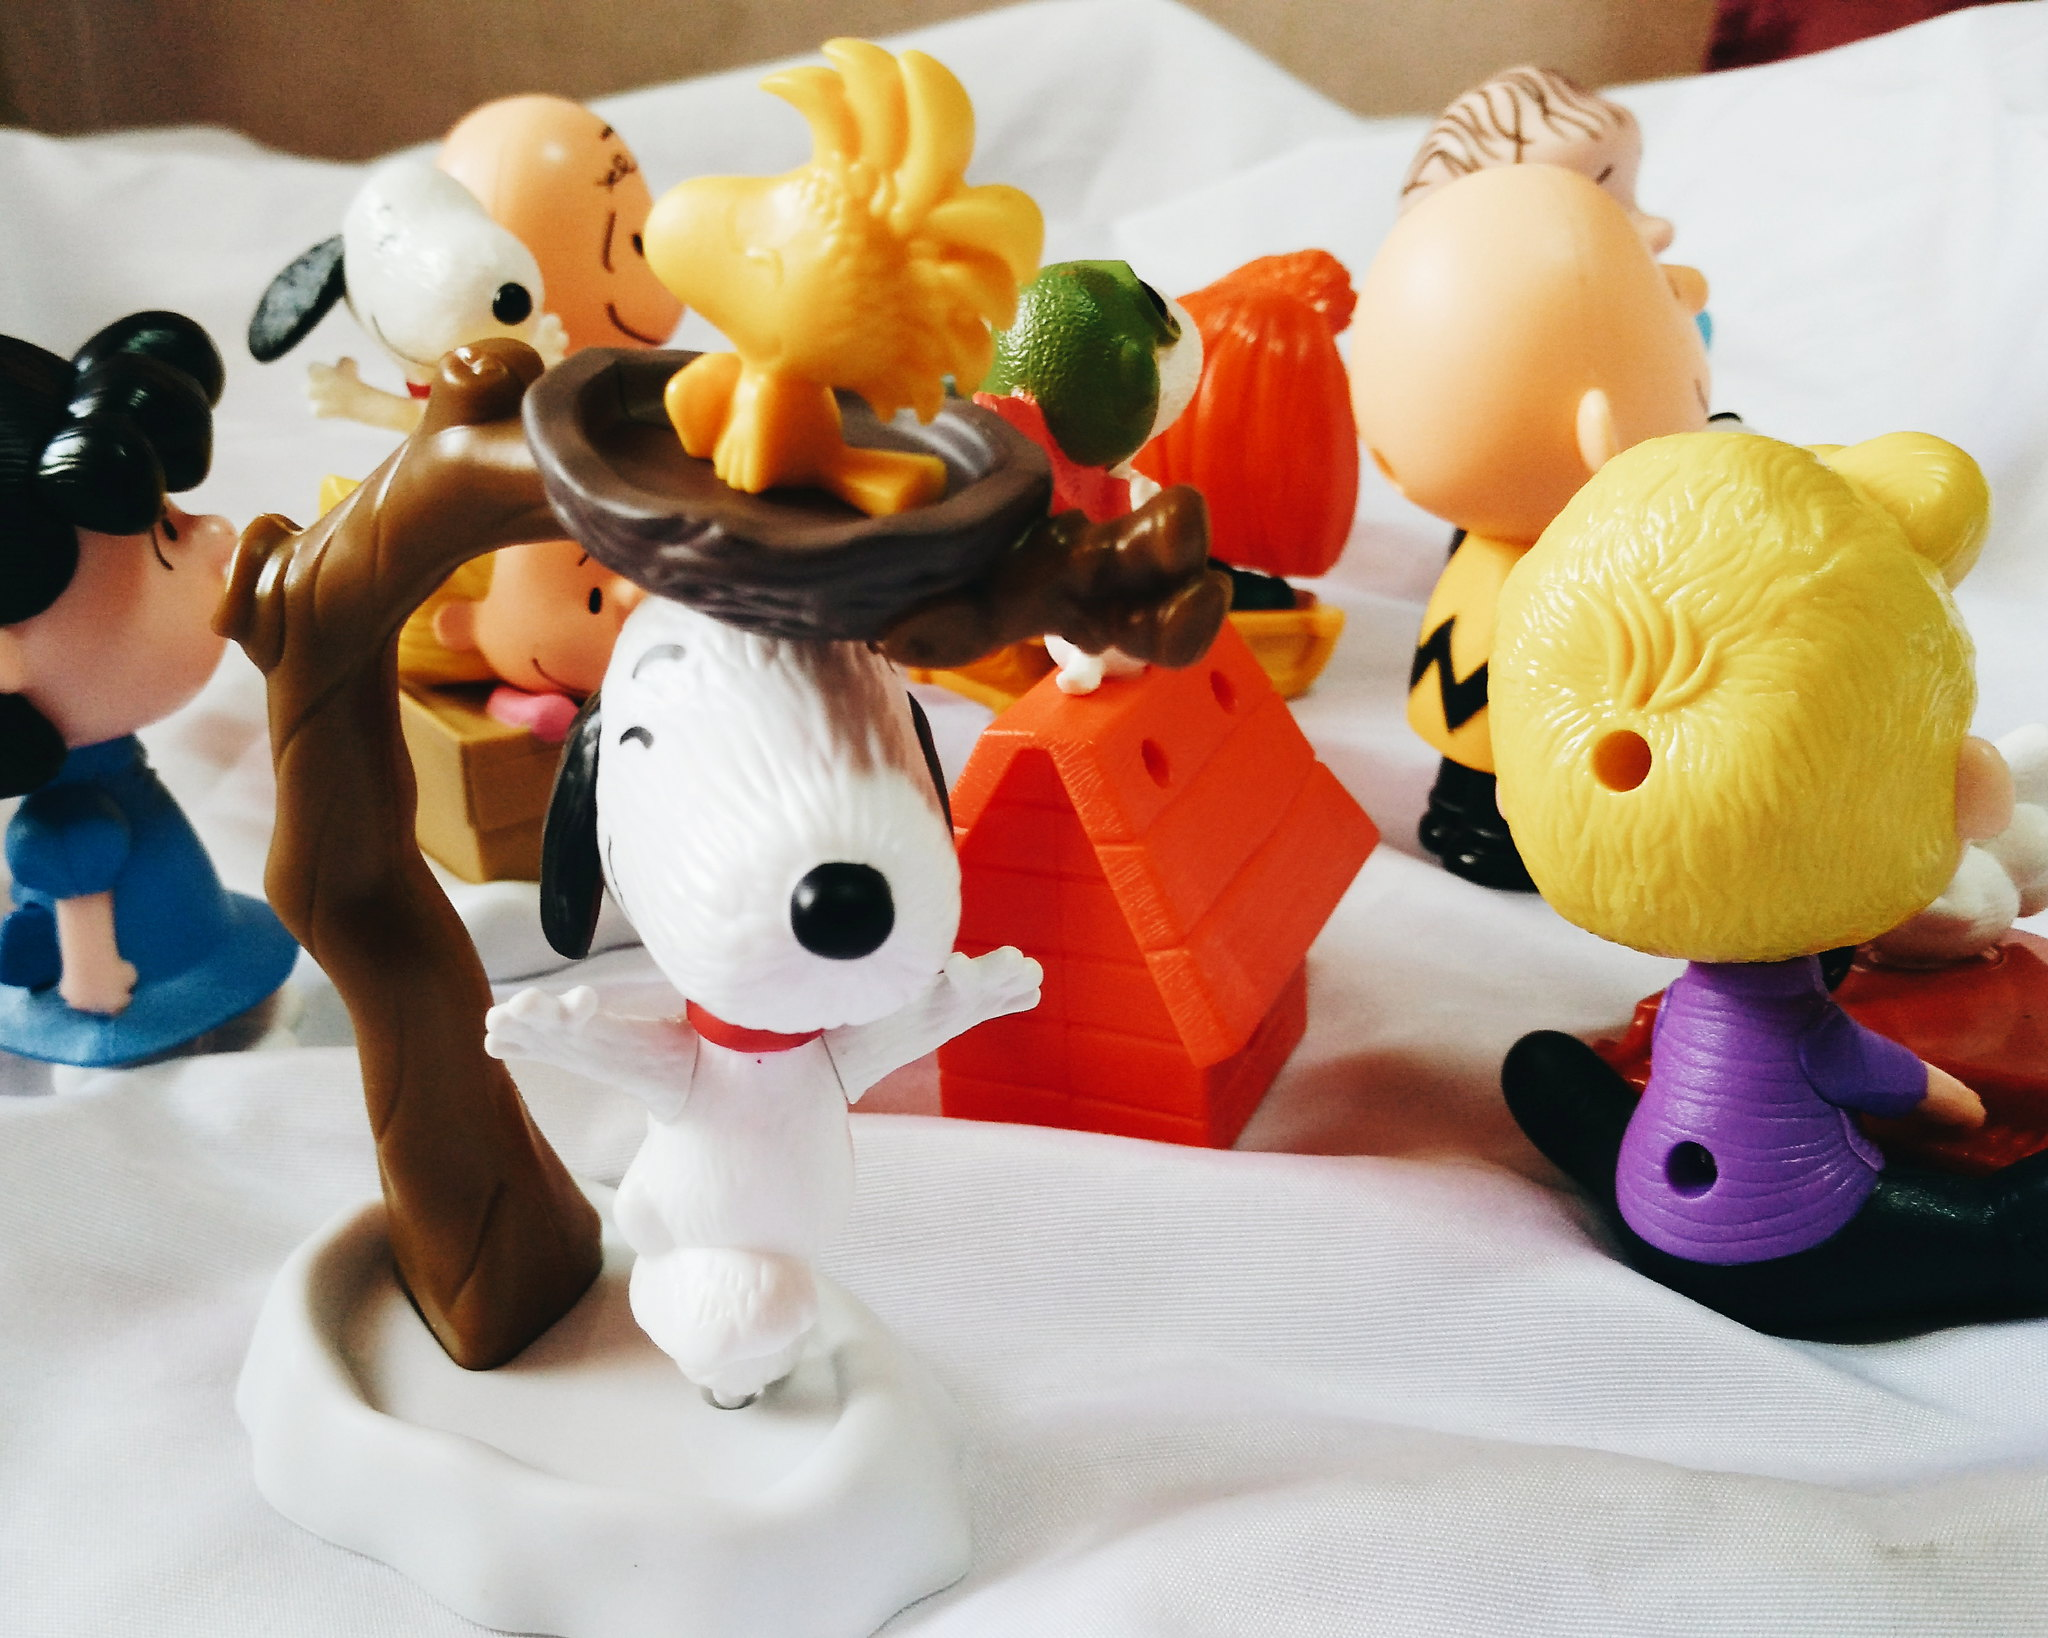 snoopy mcdo happy meal toys